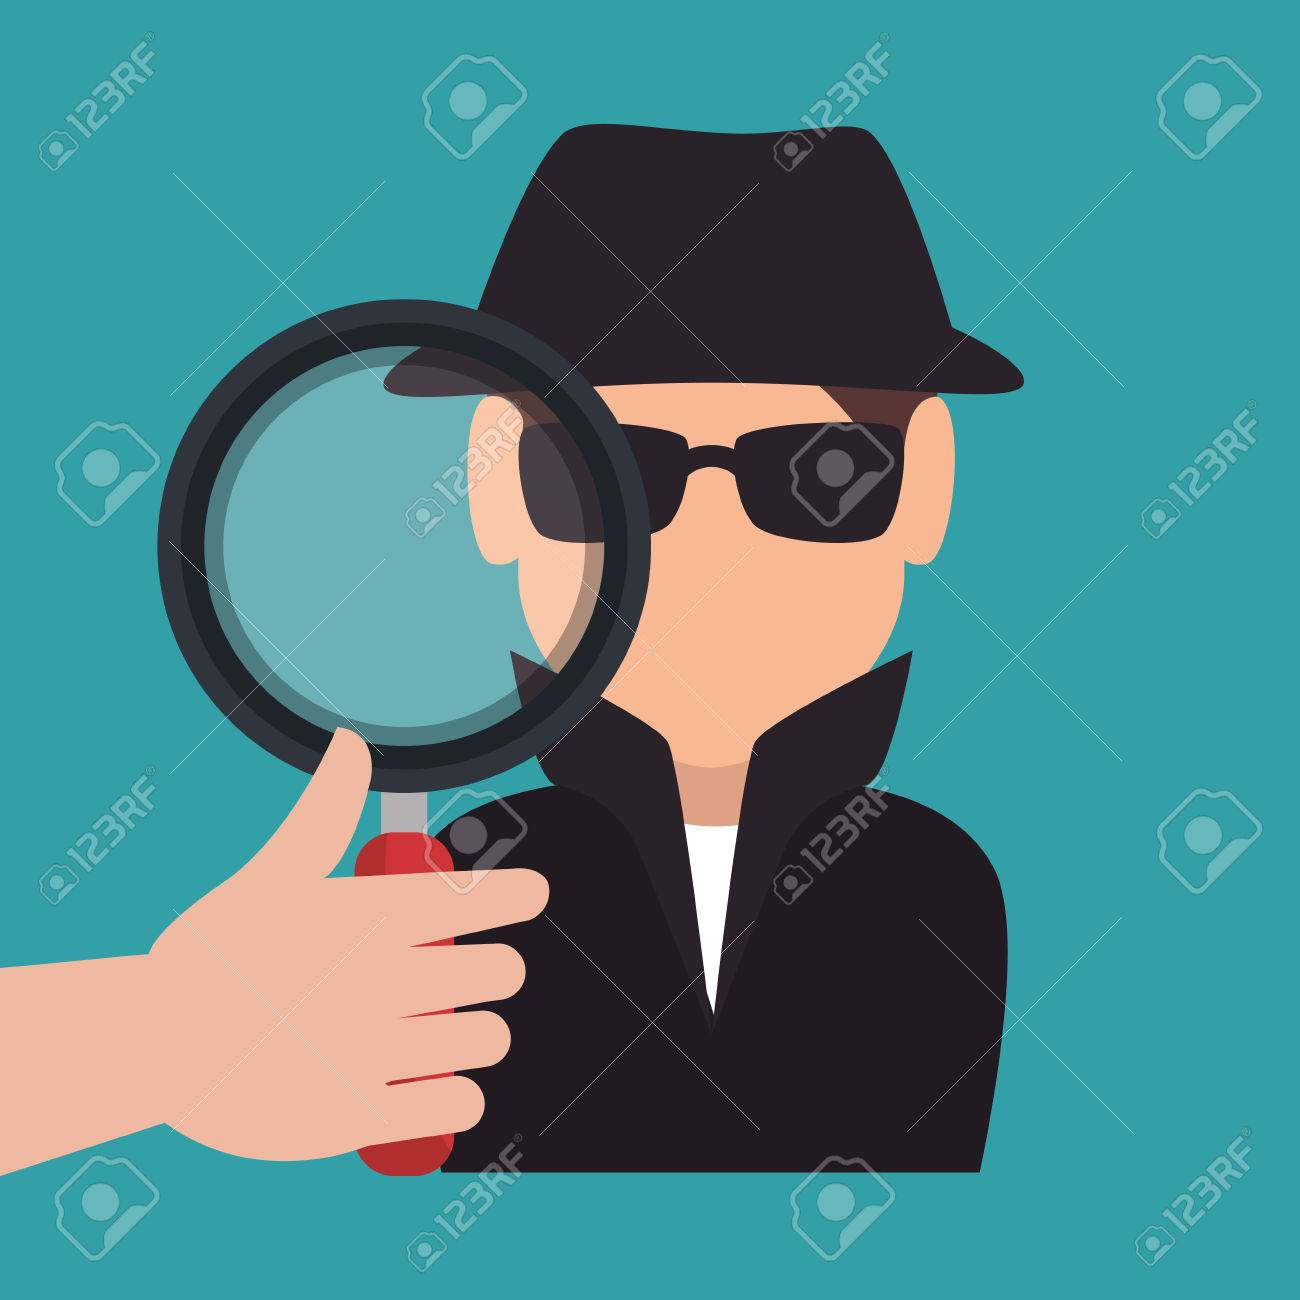 hand holding magnifying glass and avatar hacker criminal man